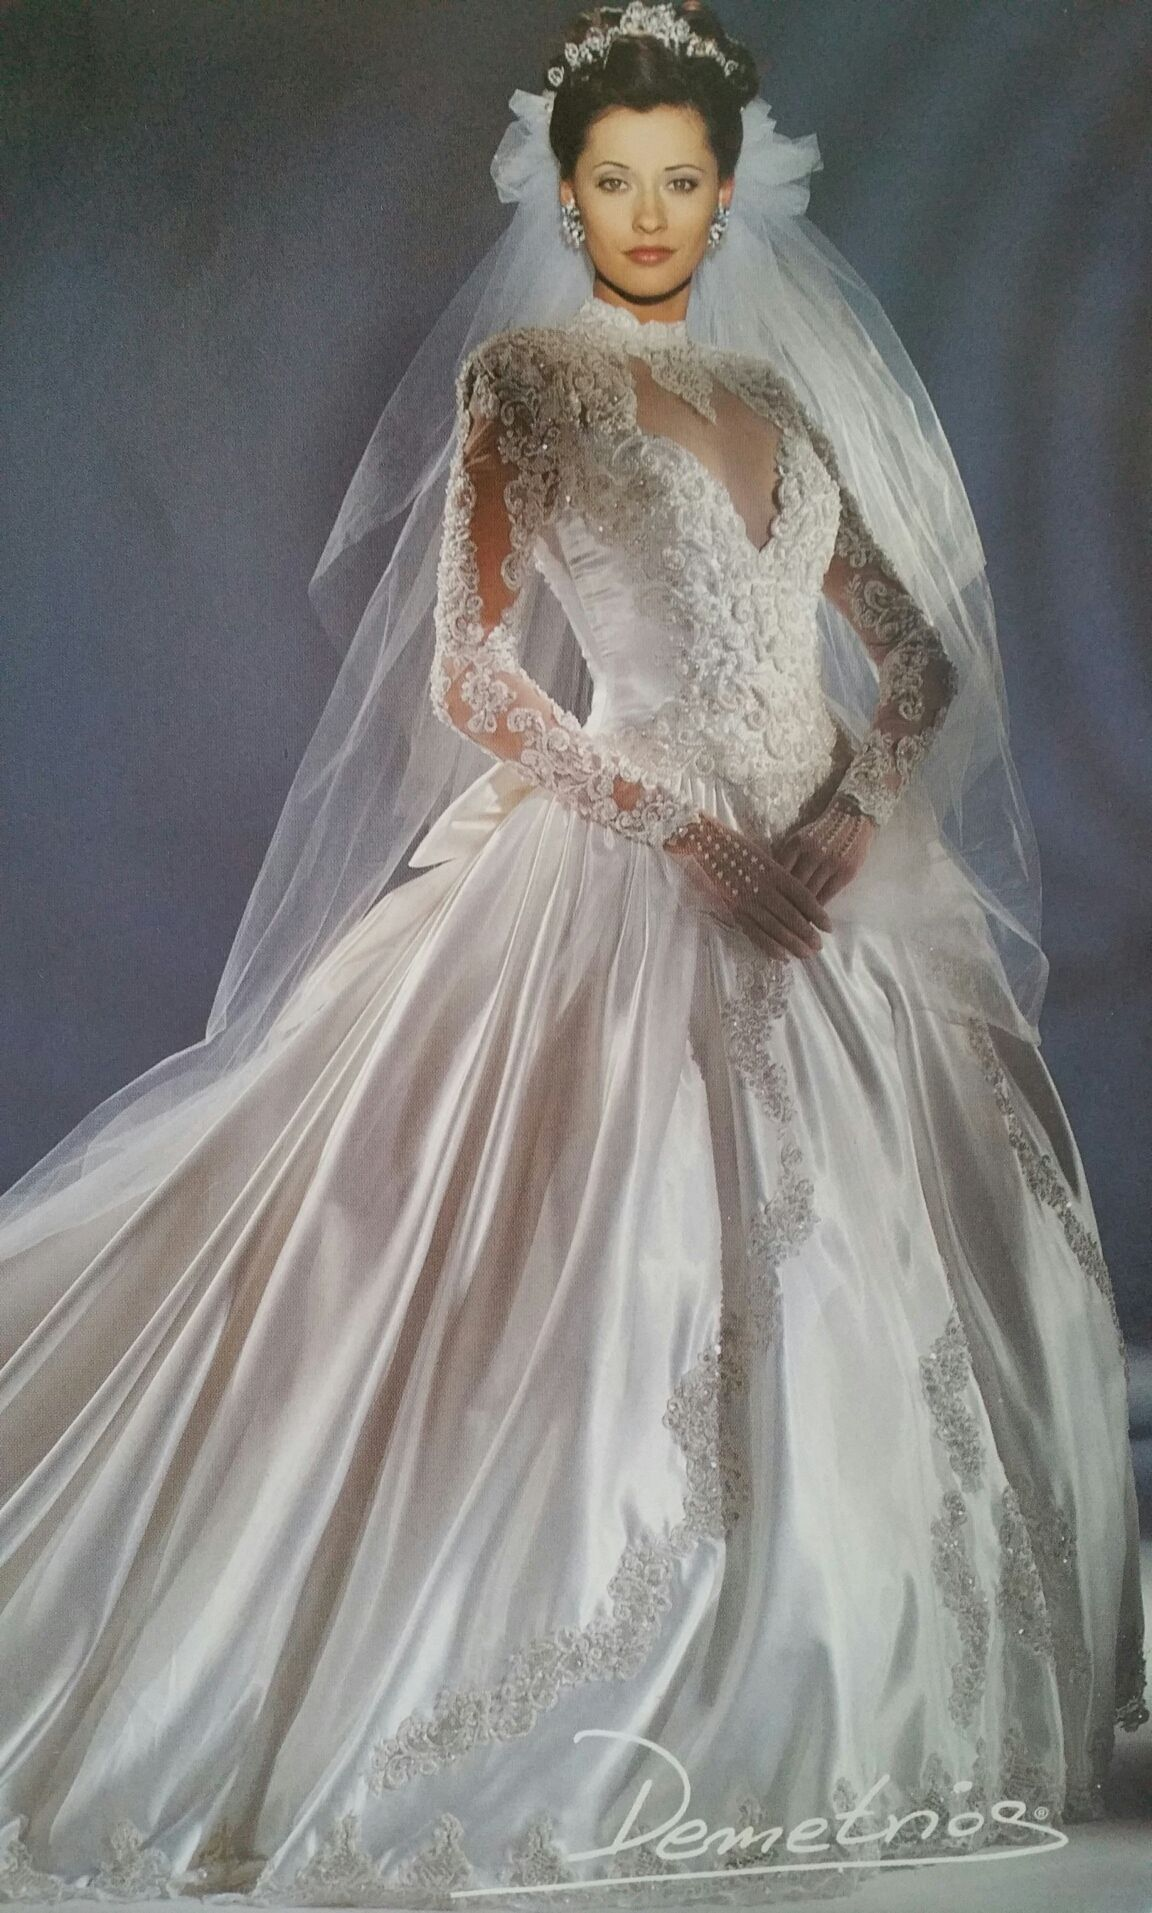 Demetrios 6-8, $250 Size: 8 | Used Wedding Dresses | Finals, Wedding ...